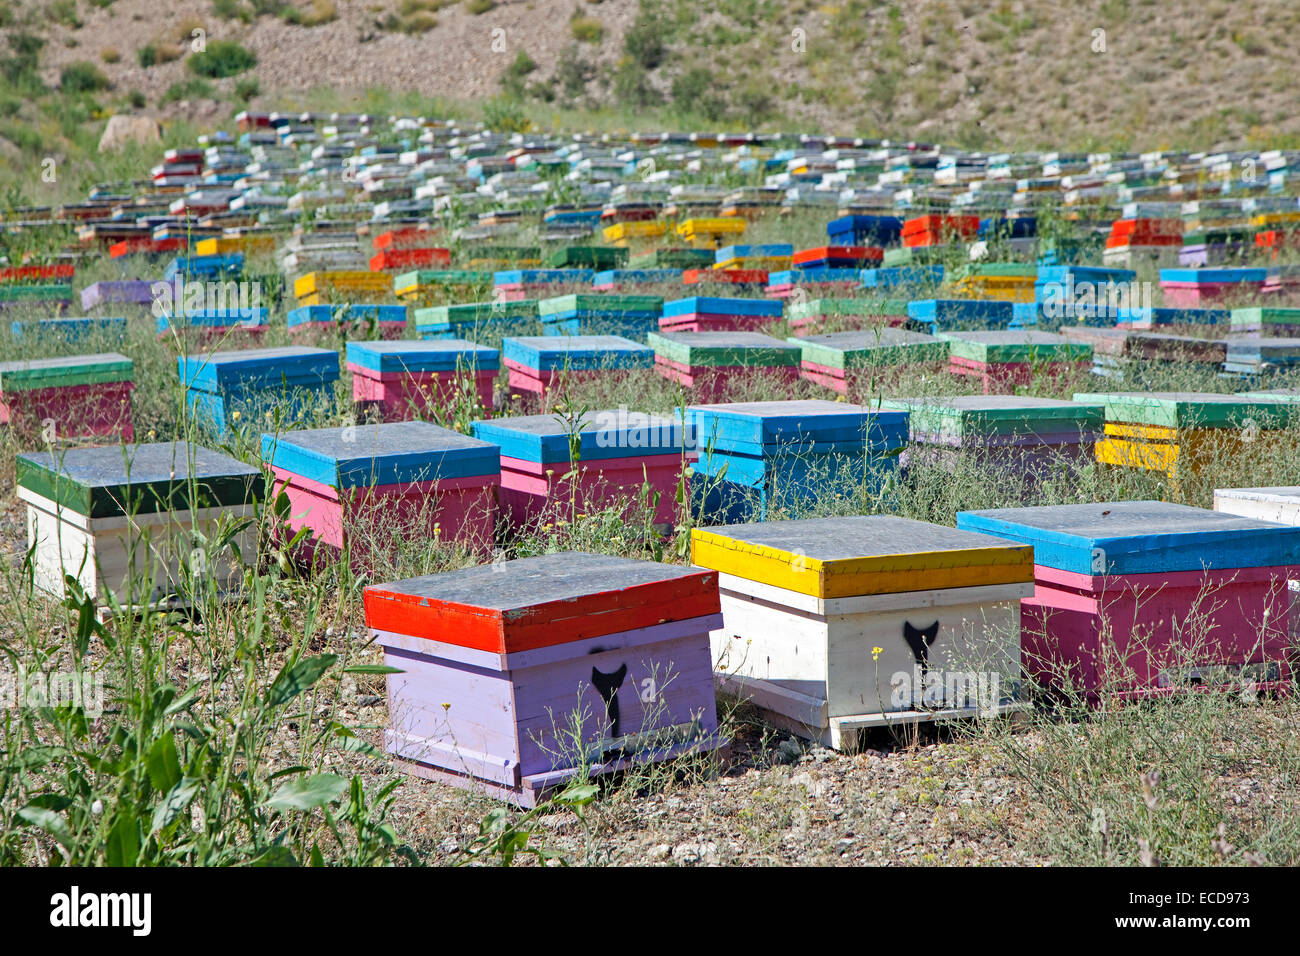 Beekeeper's bee yard with colourful painted wooden beehives with honey bees in Iran - Stock Image